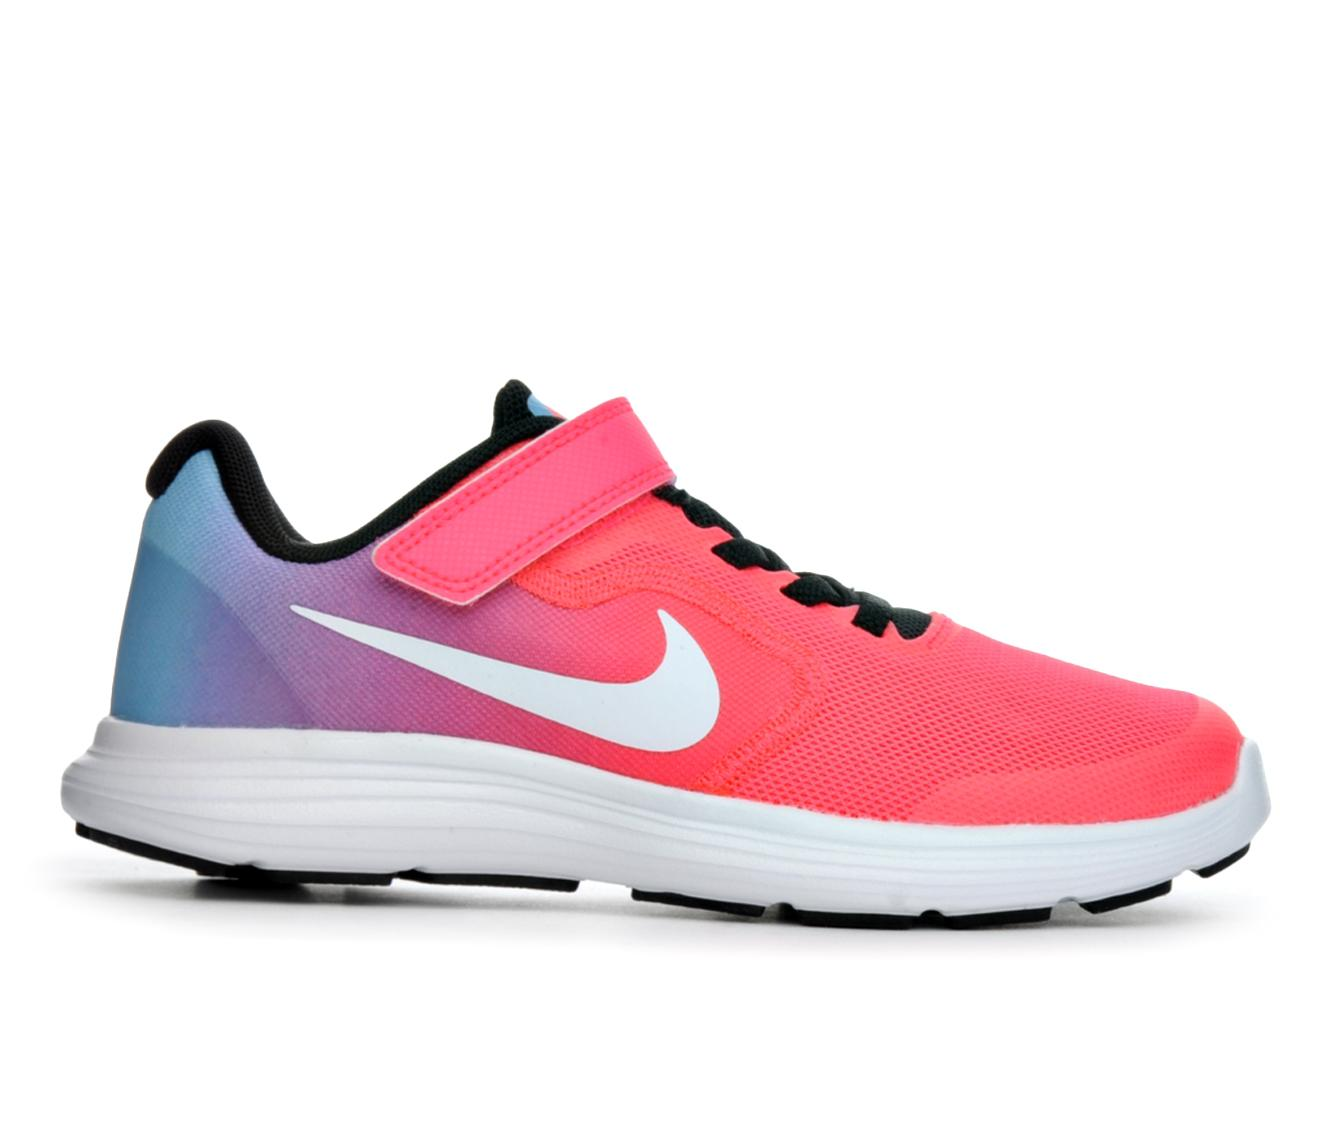 Nike Girl Shoes - Style Guru: Fashion, Glitz, Glamour ...